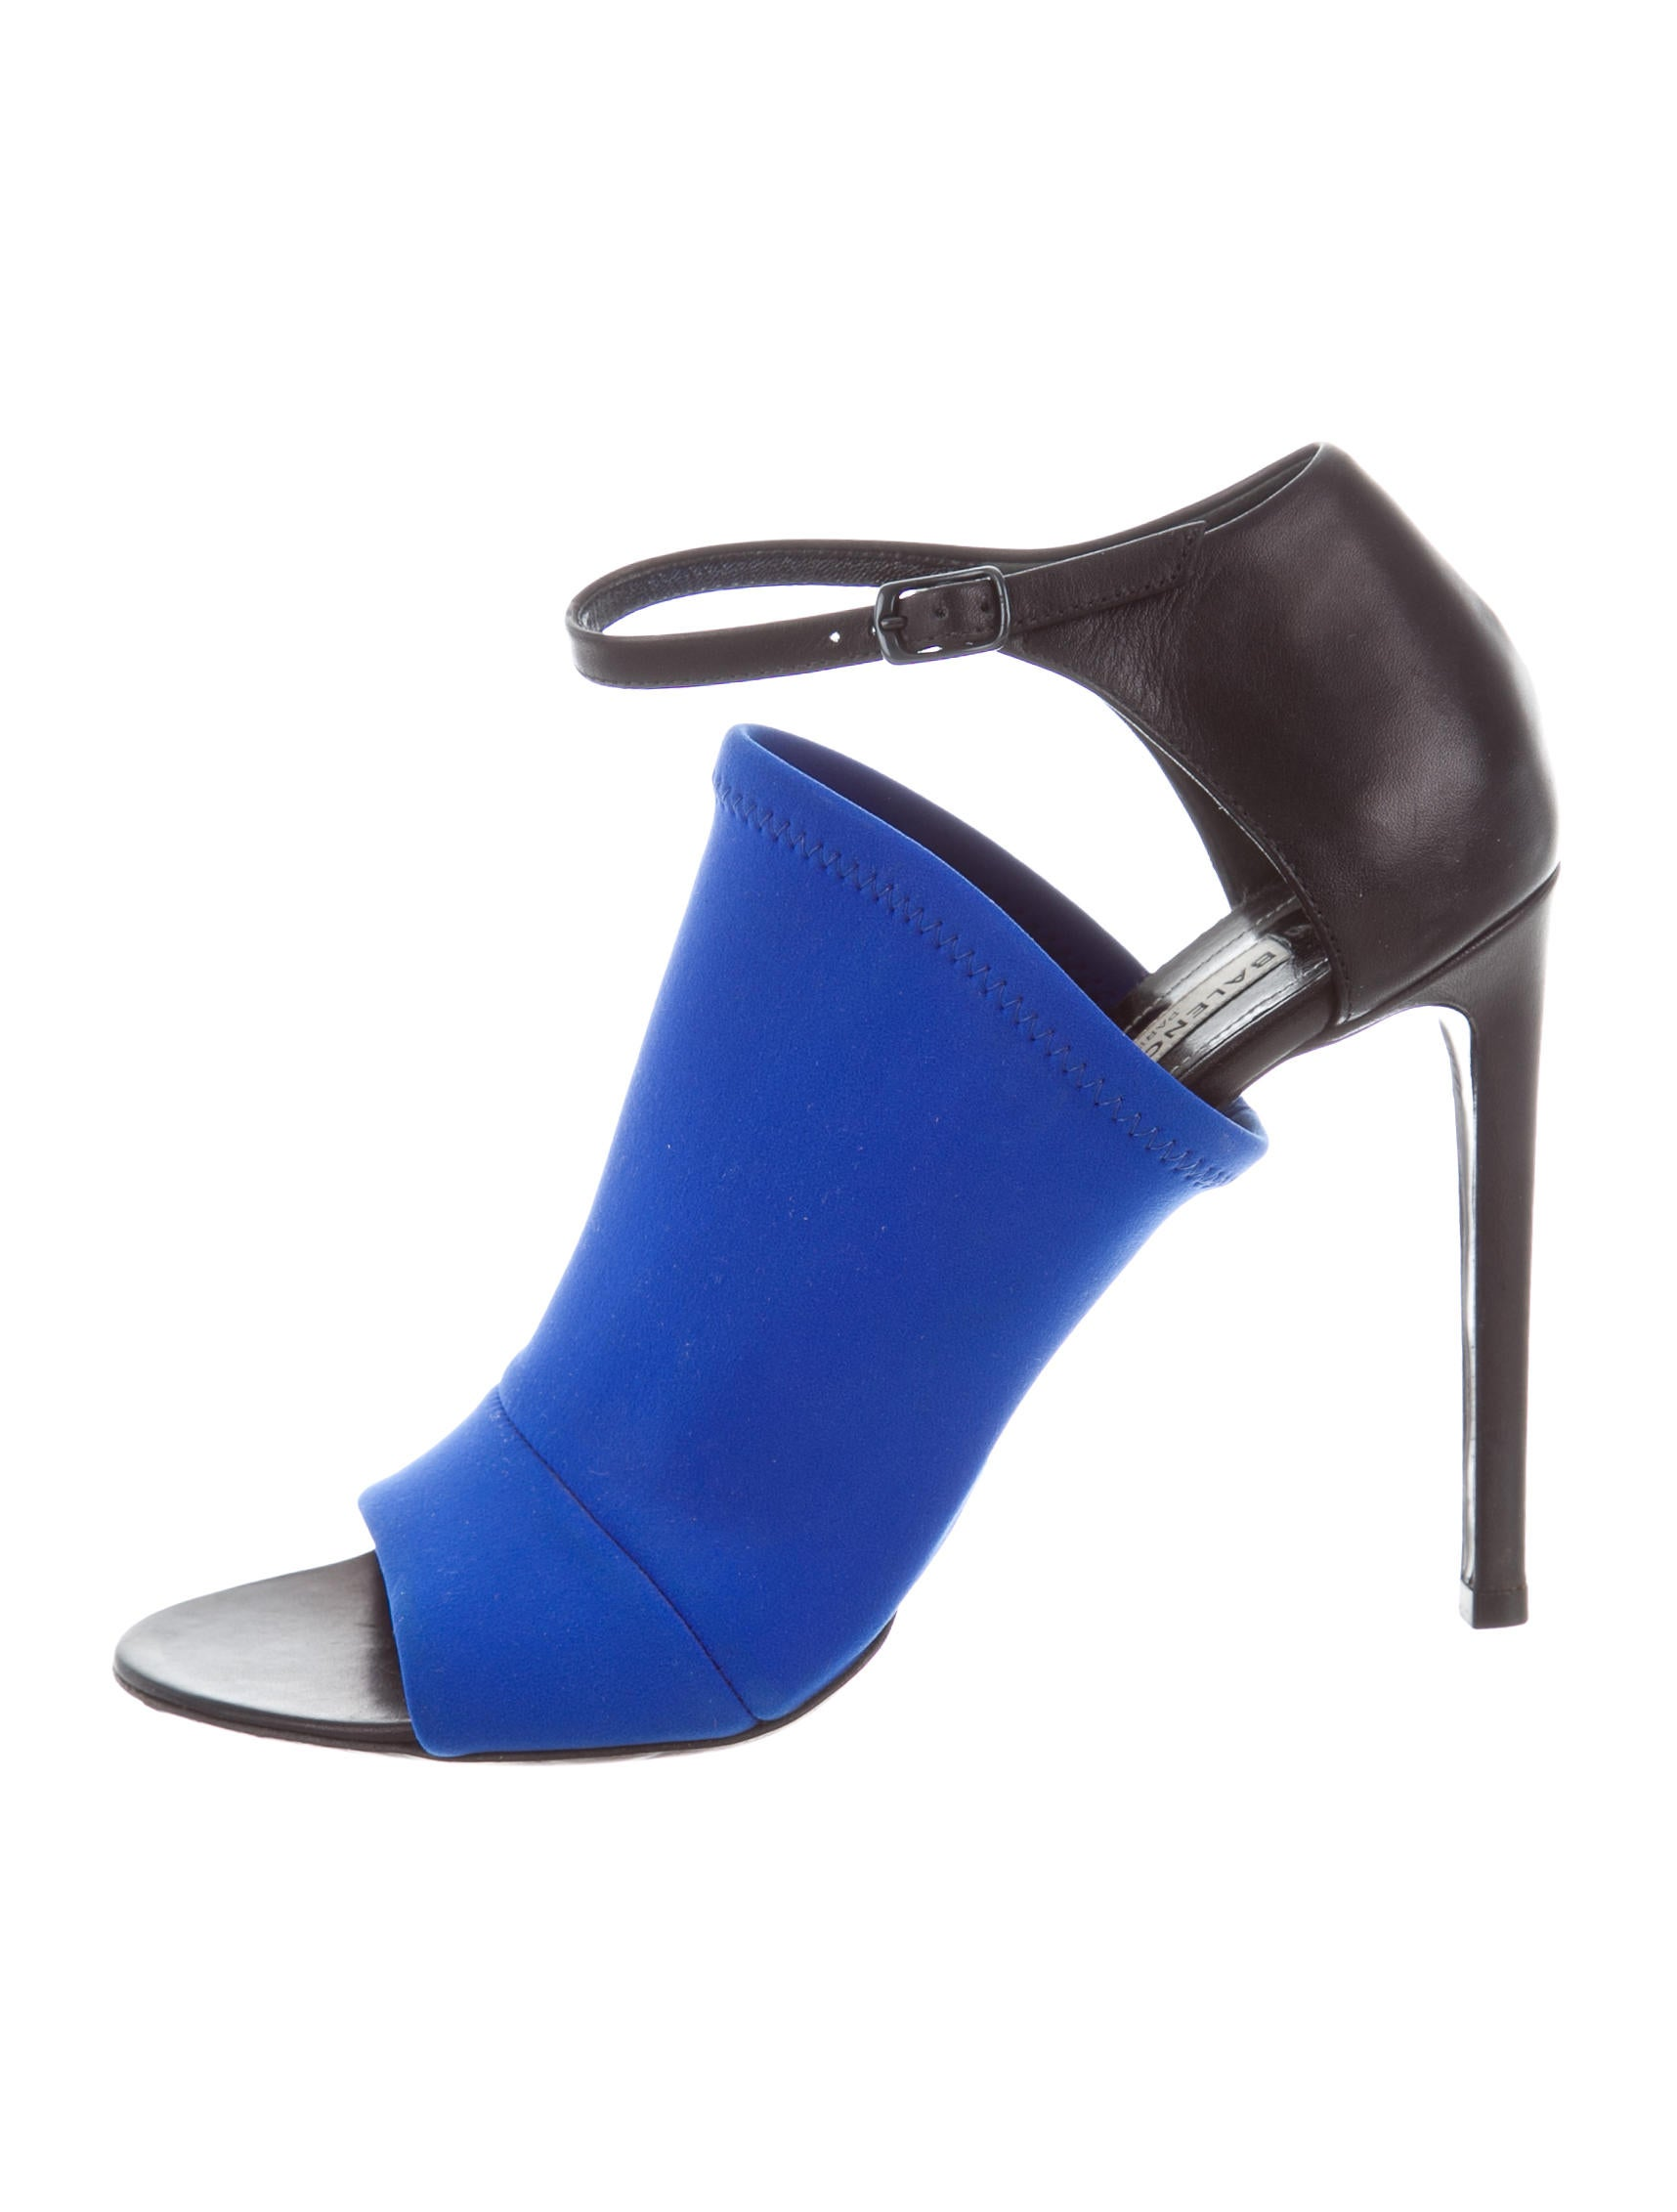 Balenciaga Neoprene Ankle-Strap Sandals free shipping many kinds of cheapest price cheap price wide range of cheap online buy online with paypal outlet extremely XlRgJ